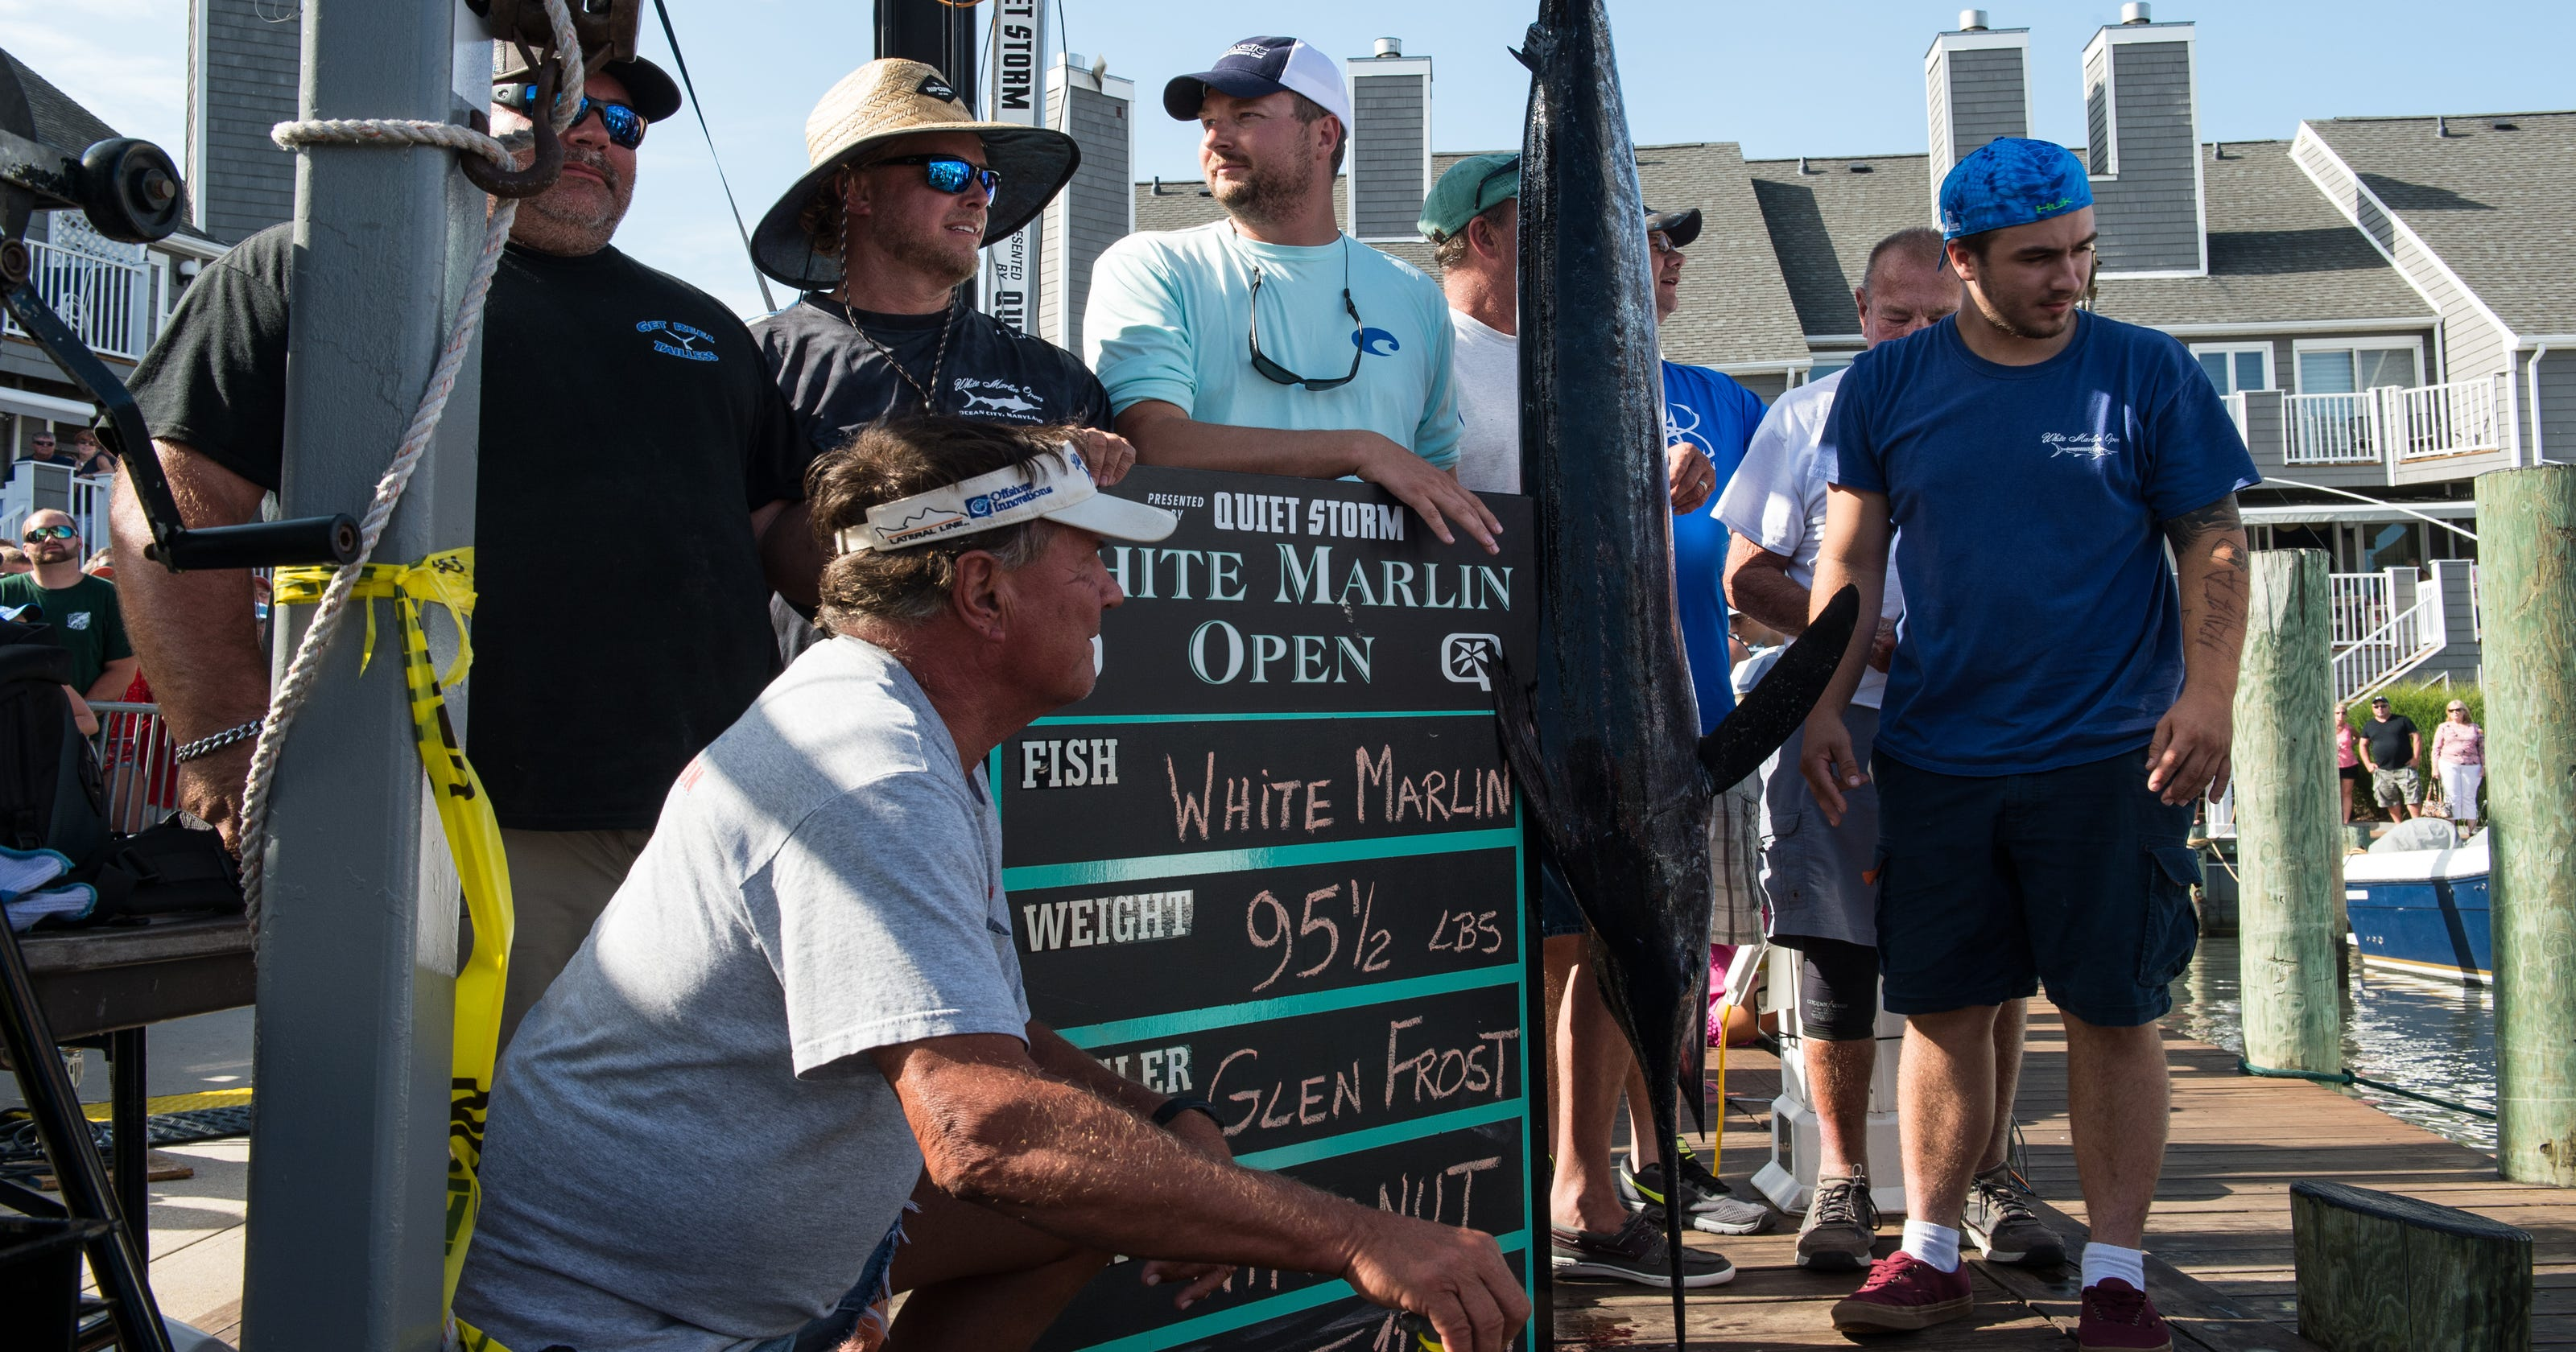 White Marlin Open winners retested, 1 fails polygraph